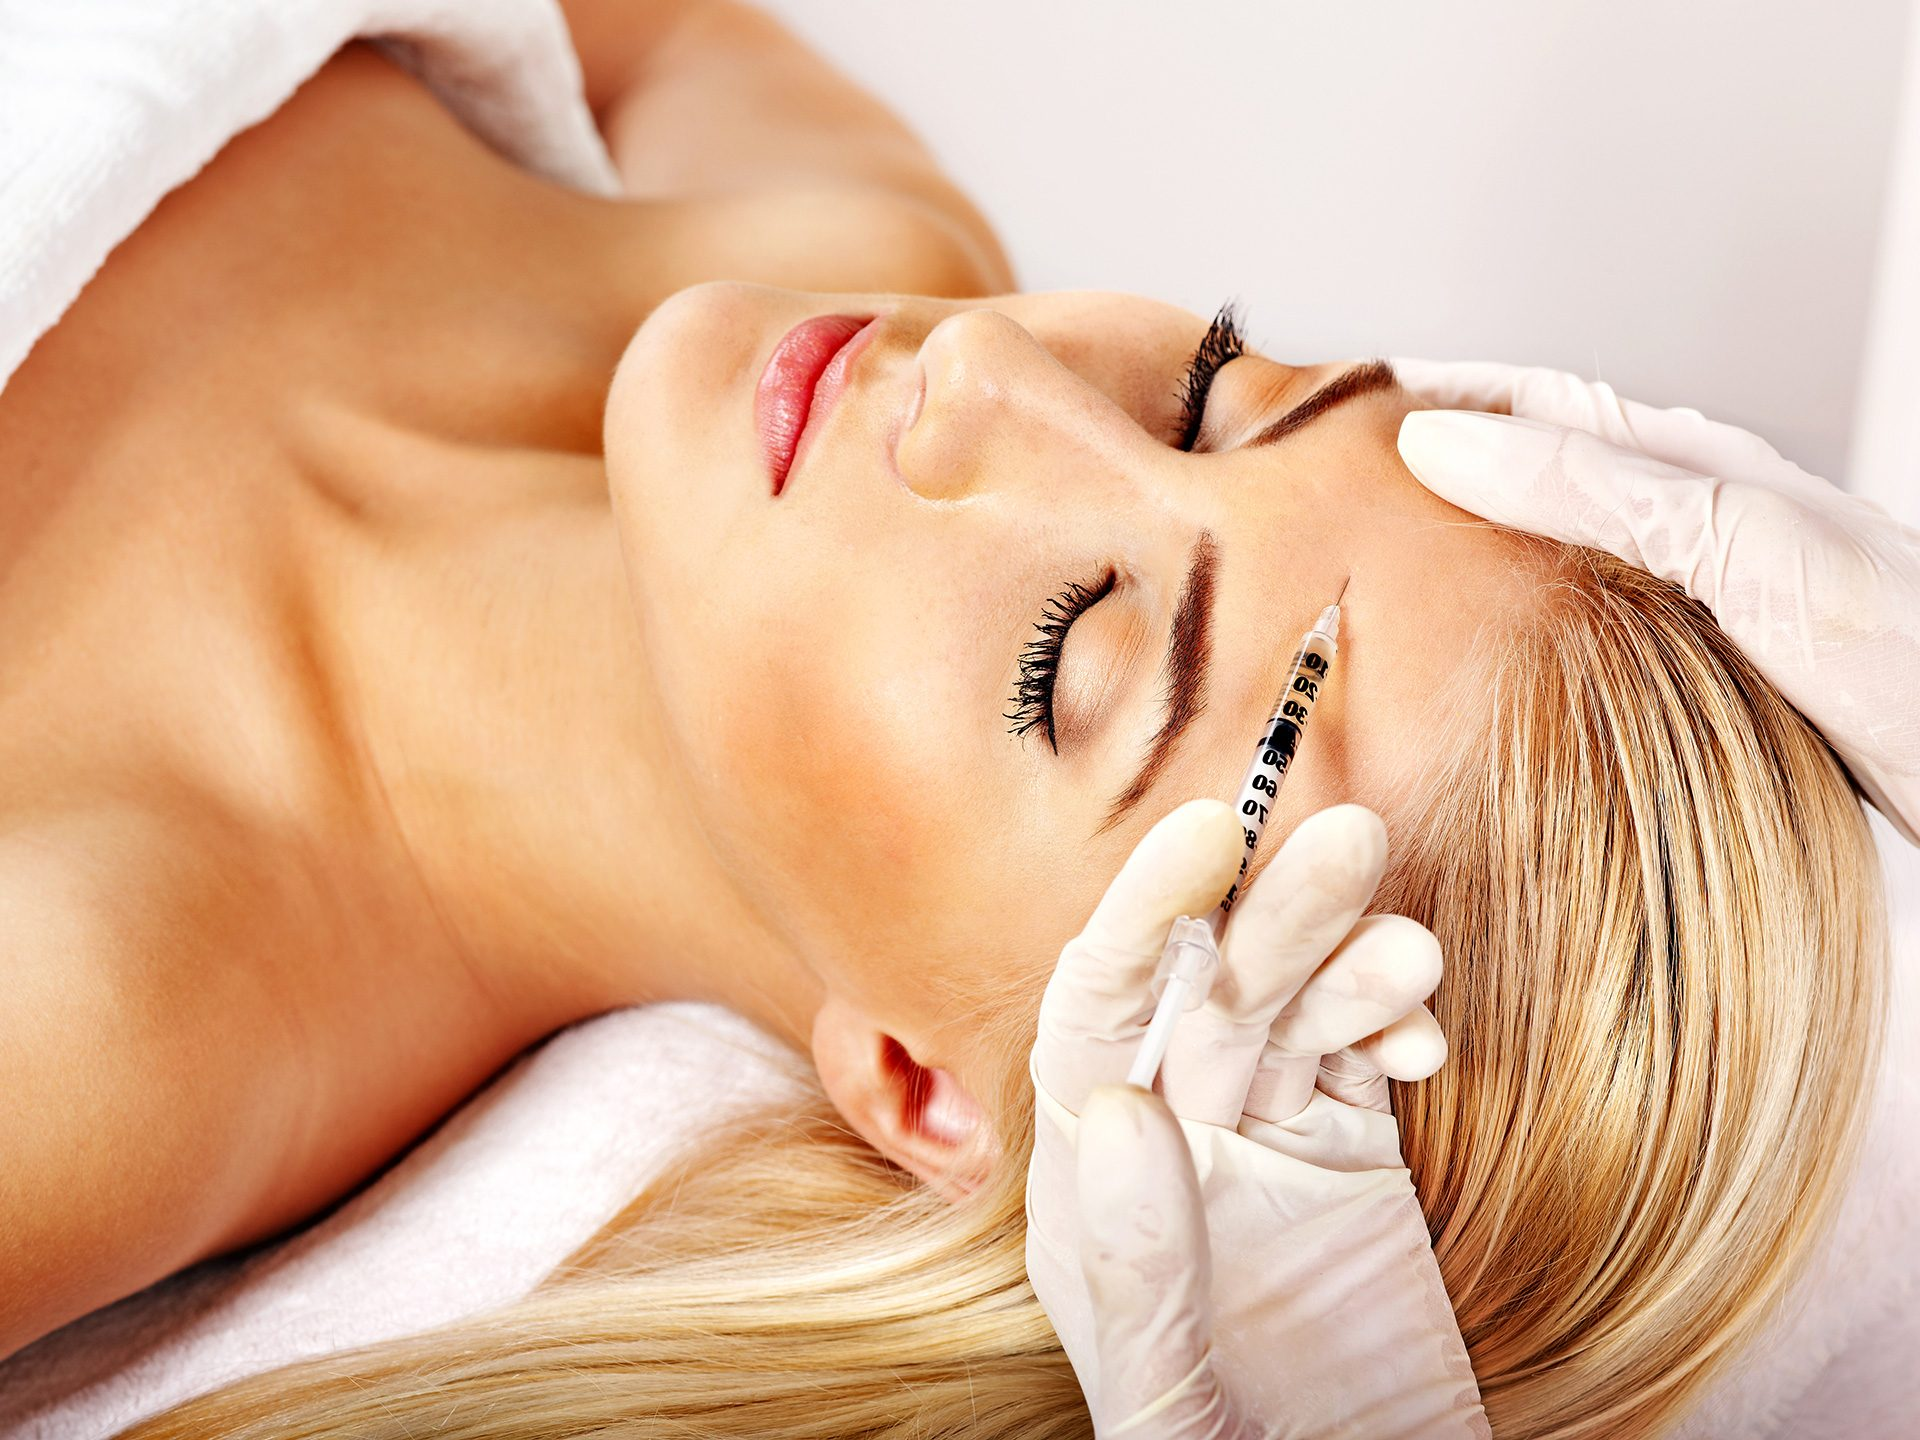 BOTOX-LONDON-BOTOX-TREATMENT-&-INJECTIONS-LONDON--5